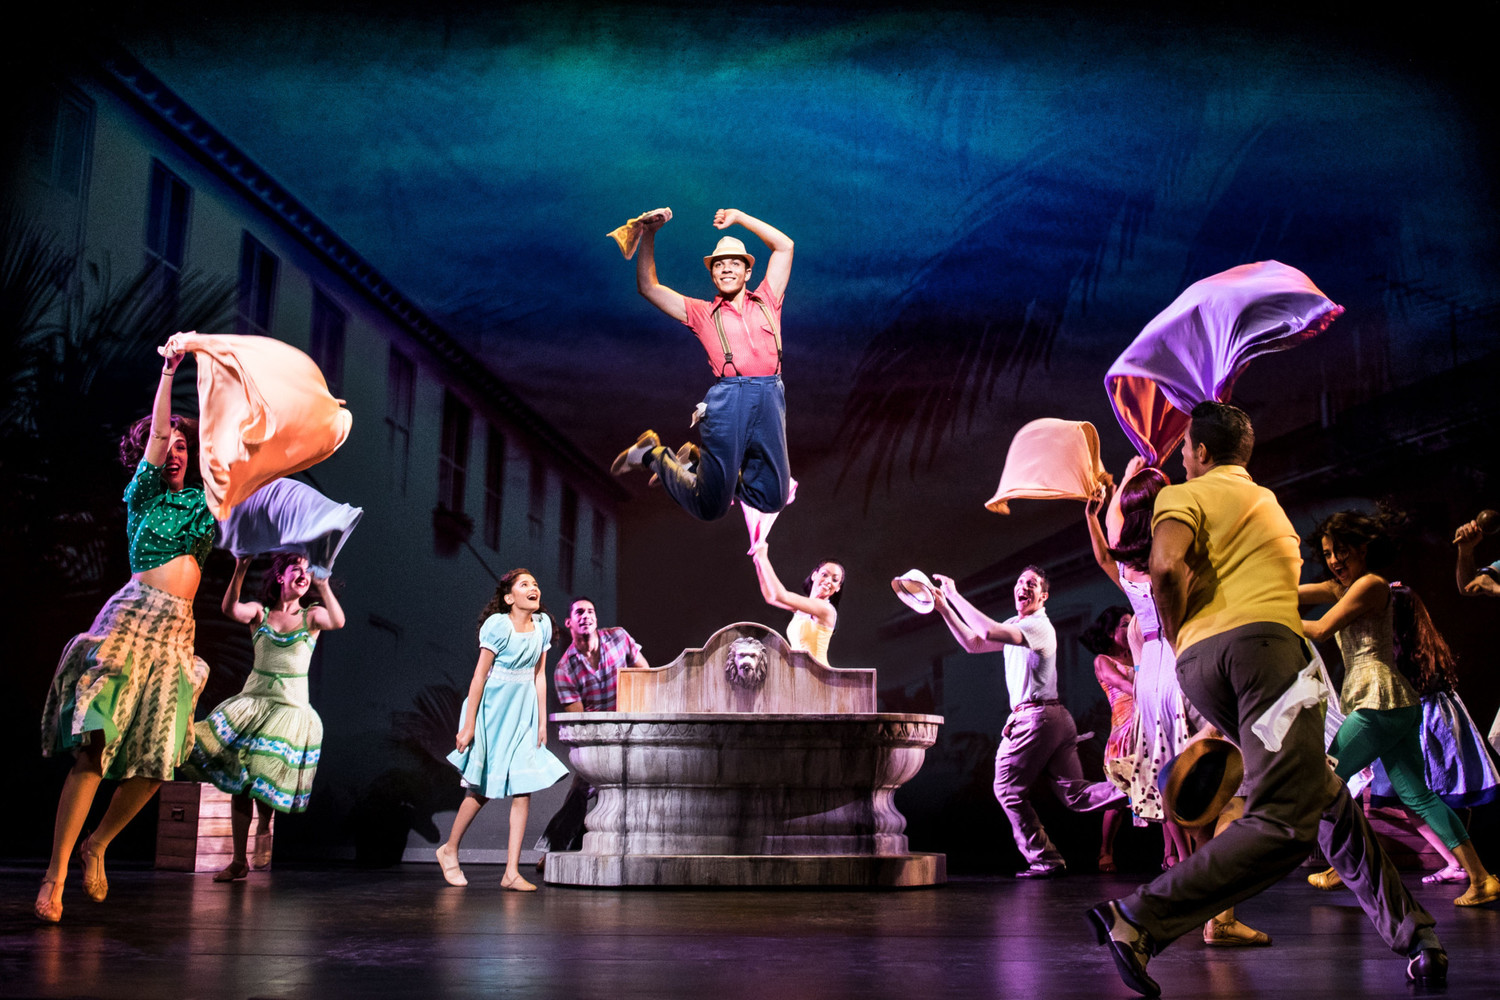 BWW Review: ON YOUR FEET! Thrills Now Through October 14th at Broadway San Jose